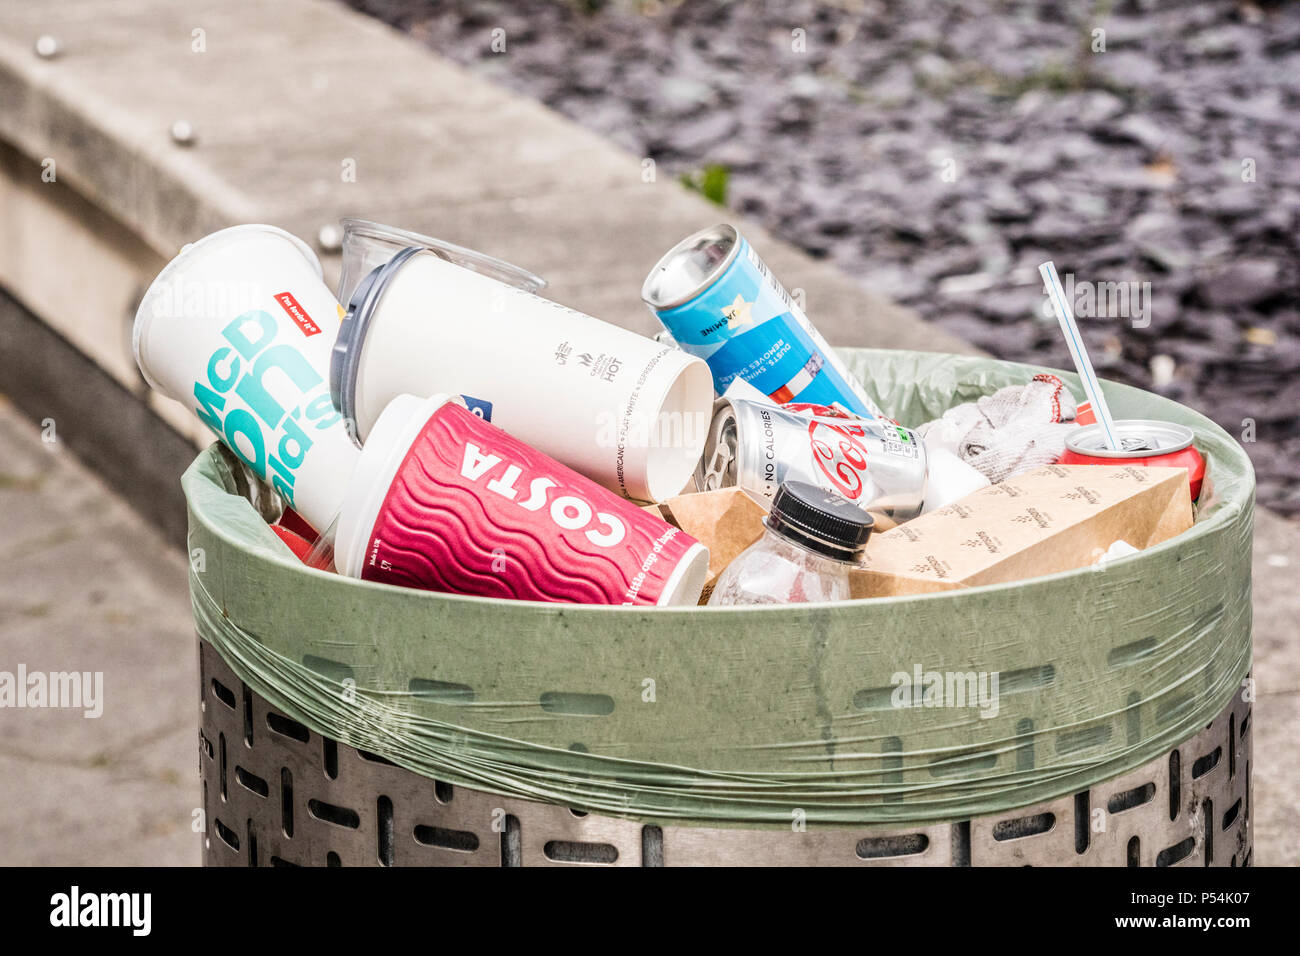 A street litter bin full of cans, plastic cups and packaging, England, UK - Stock Image